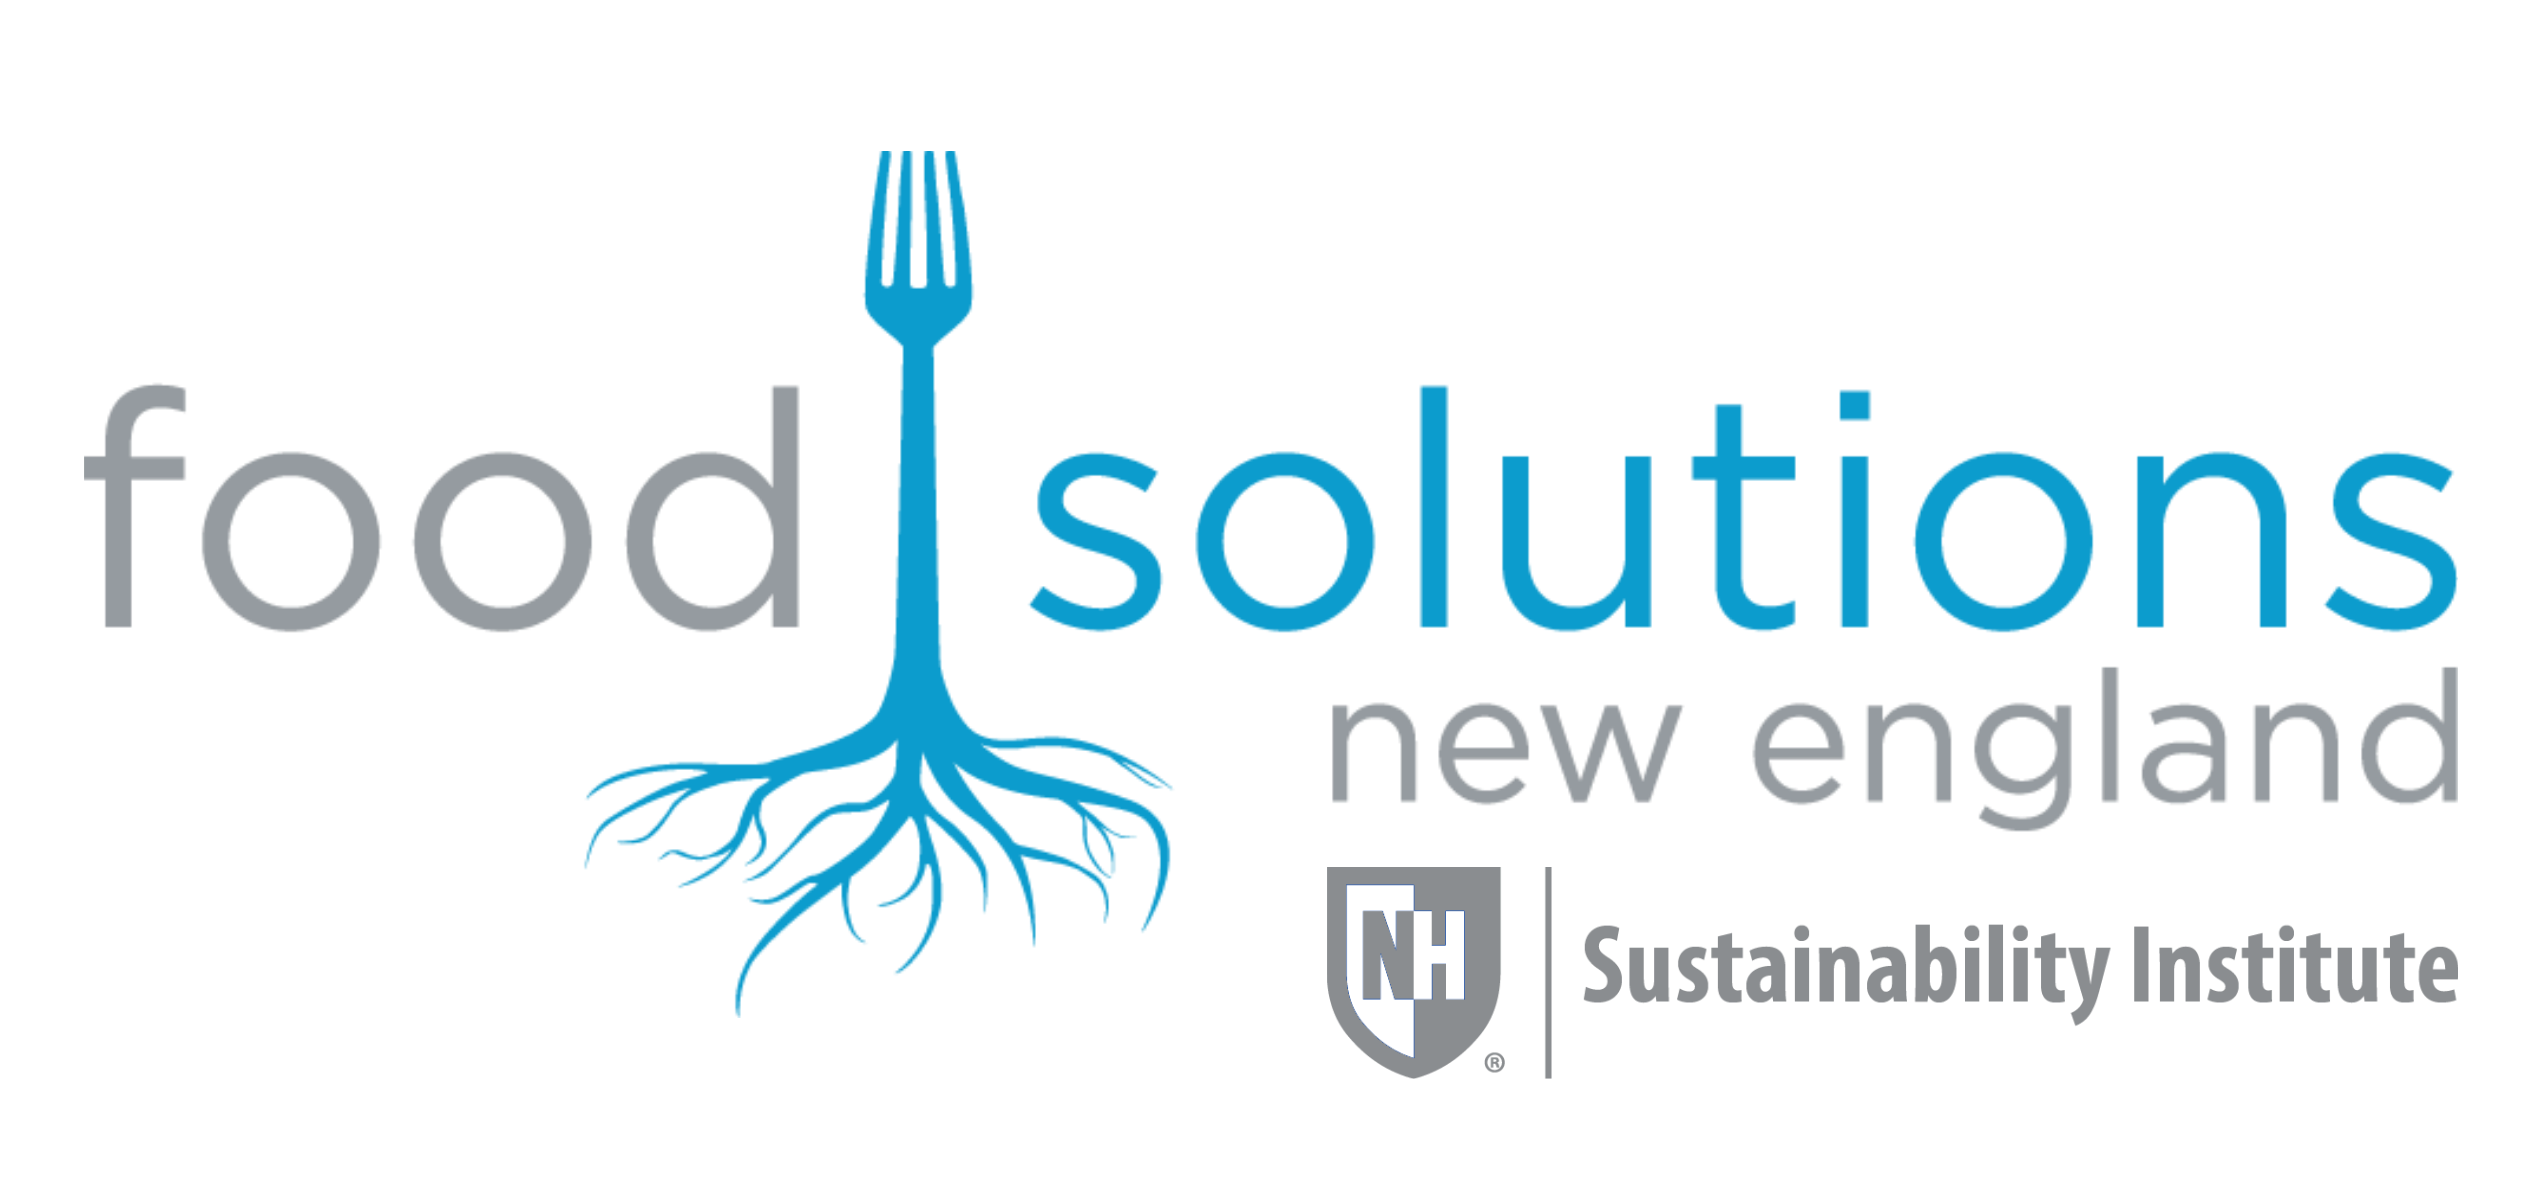 The logo for Food Solutions New England. It consists of gray and light blue lettering and the image of a fork that's base turns into the roots of a tree.